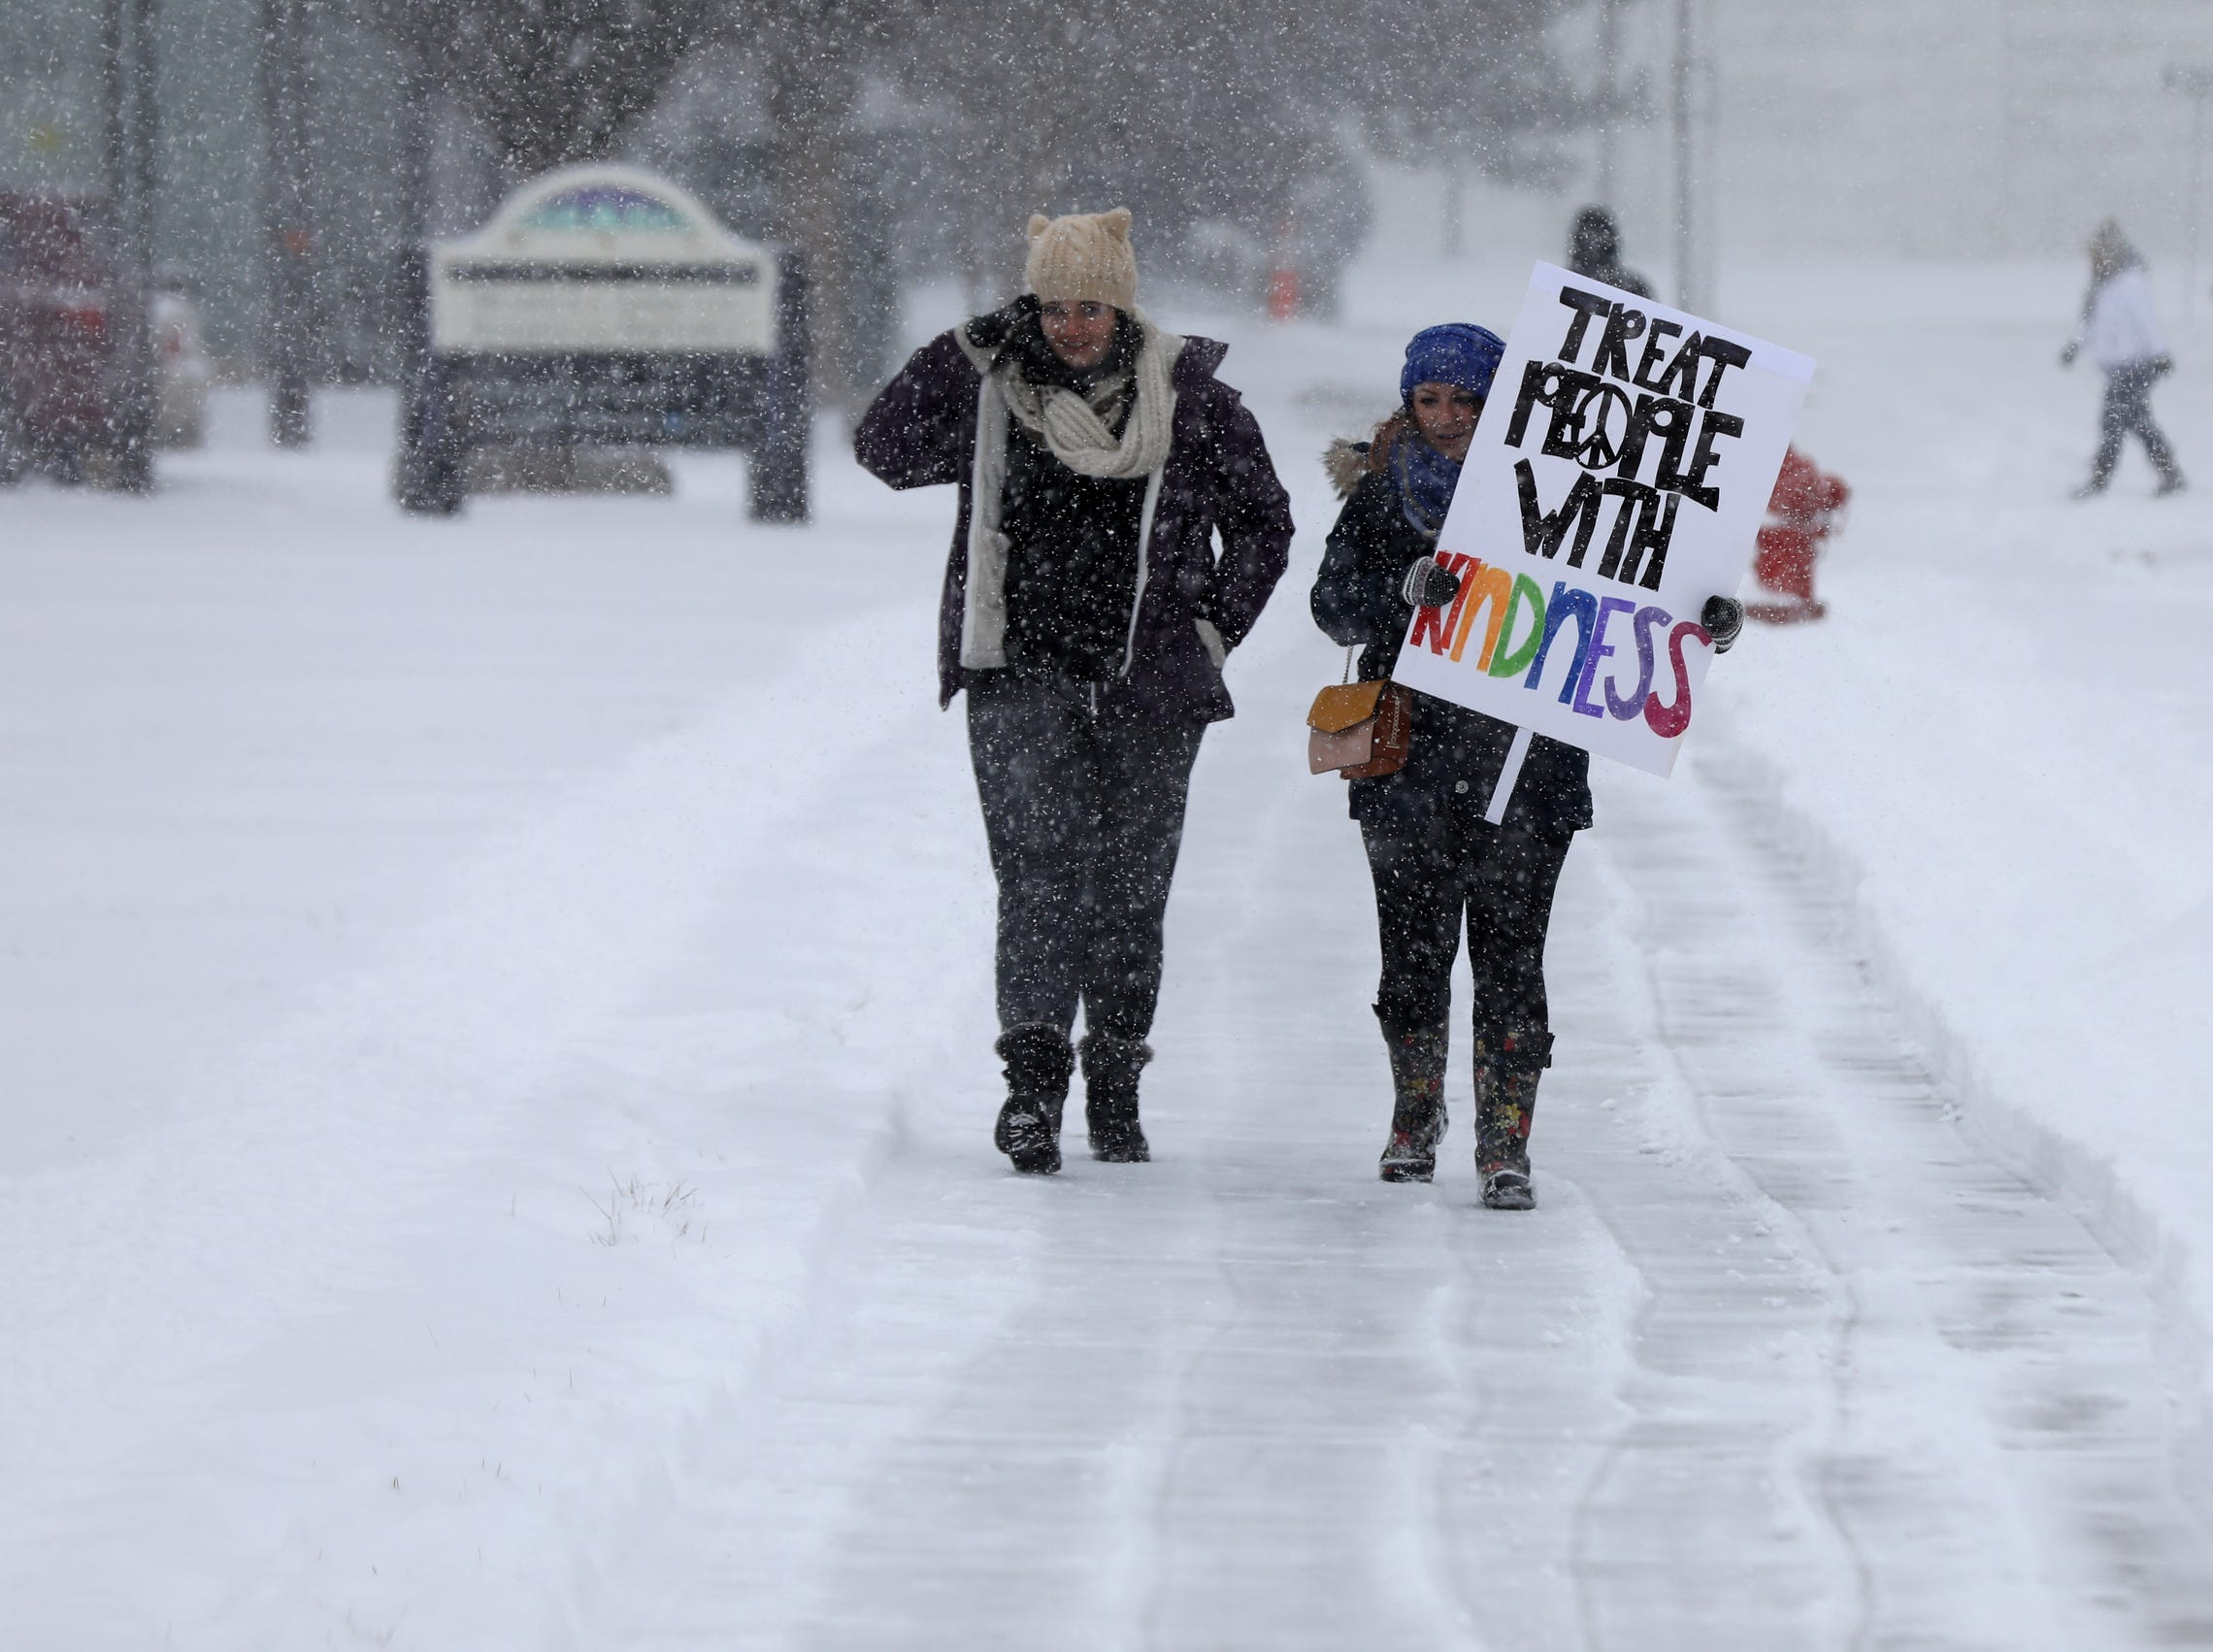 Michele Greer, 28 of Madison Heights and friend Kristy Hartman, 30 of Shelby Township battle the cold and blowing snow as they walk to the Charles H. Wright Museum of African American History for the Women's March.